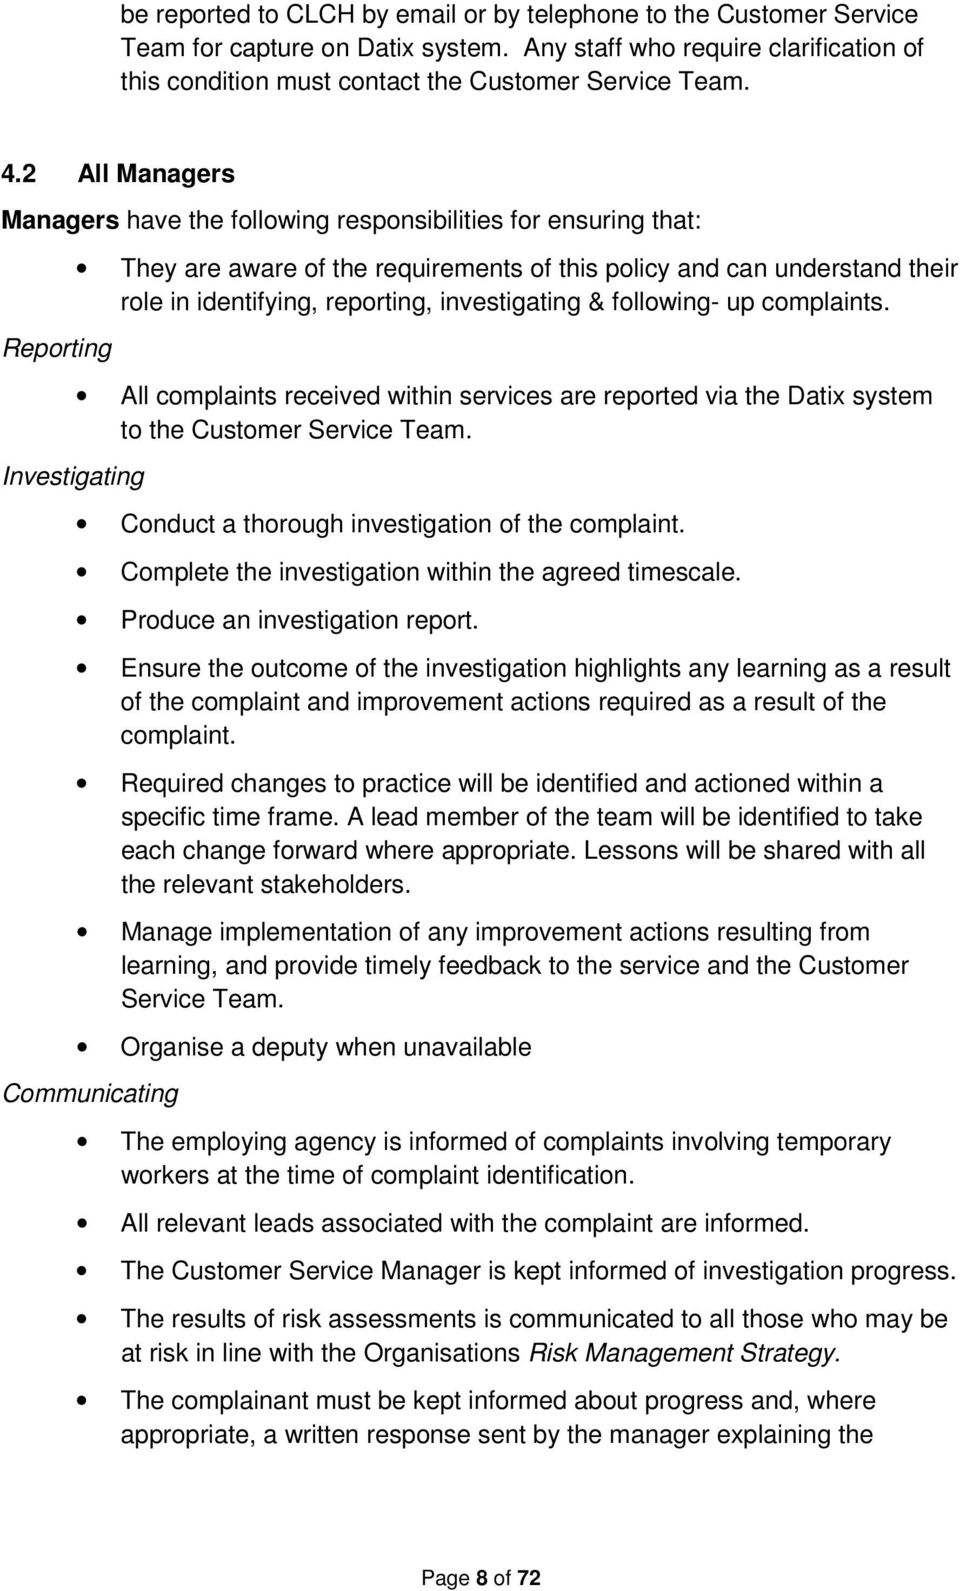 reporting, investigating & following- up complaints. All complaints received within services are reported via the Datix system to the Customer Service Team.